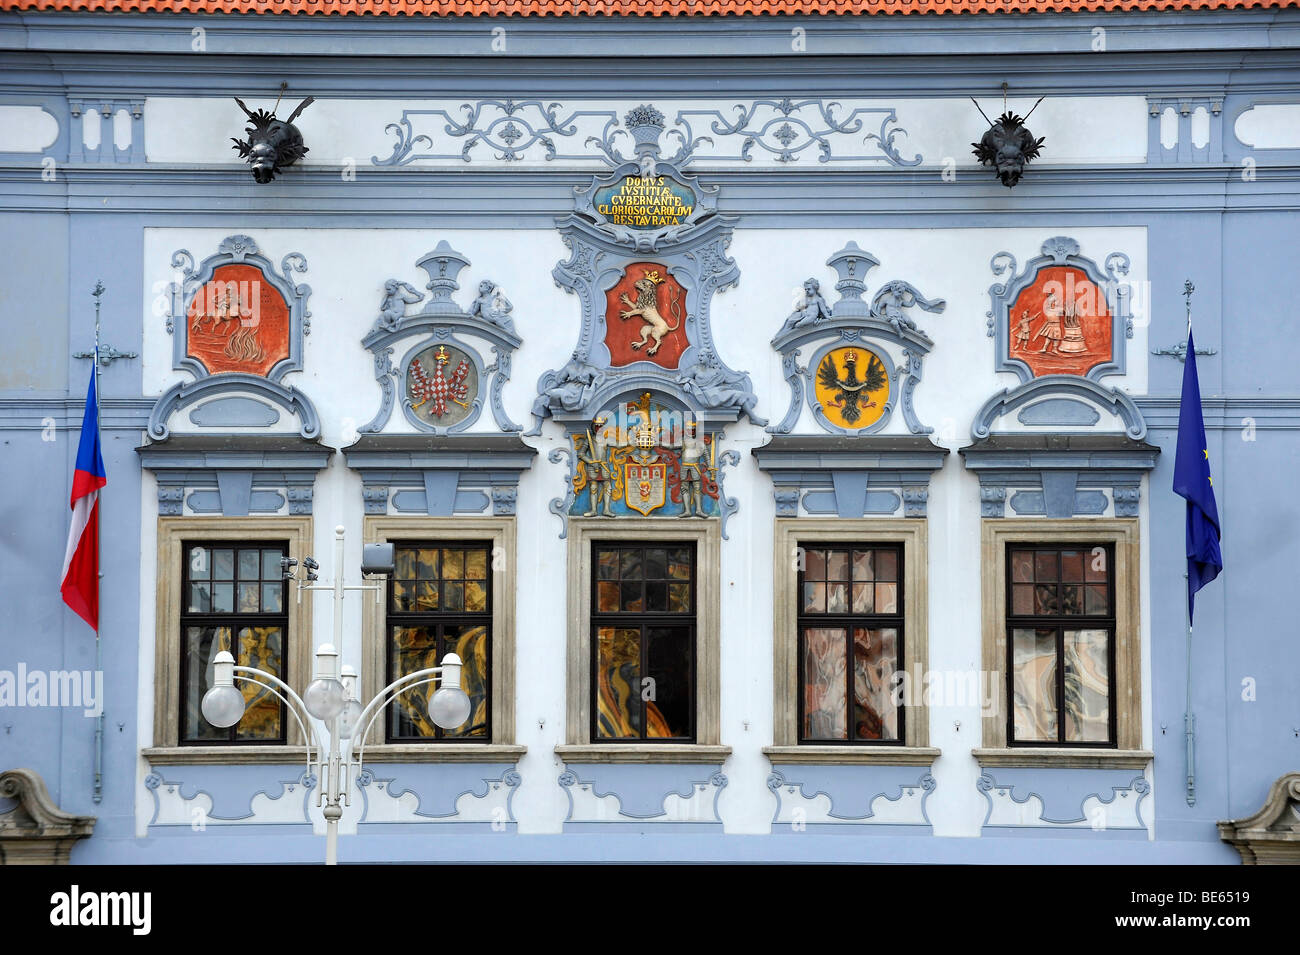 Historic Old Town, town hall and magistrate, Ceske Budejovice or Bohemian Budweis, Budvar, Bohemia, Czech Republic, - Stock Image